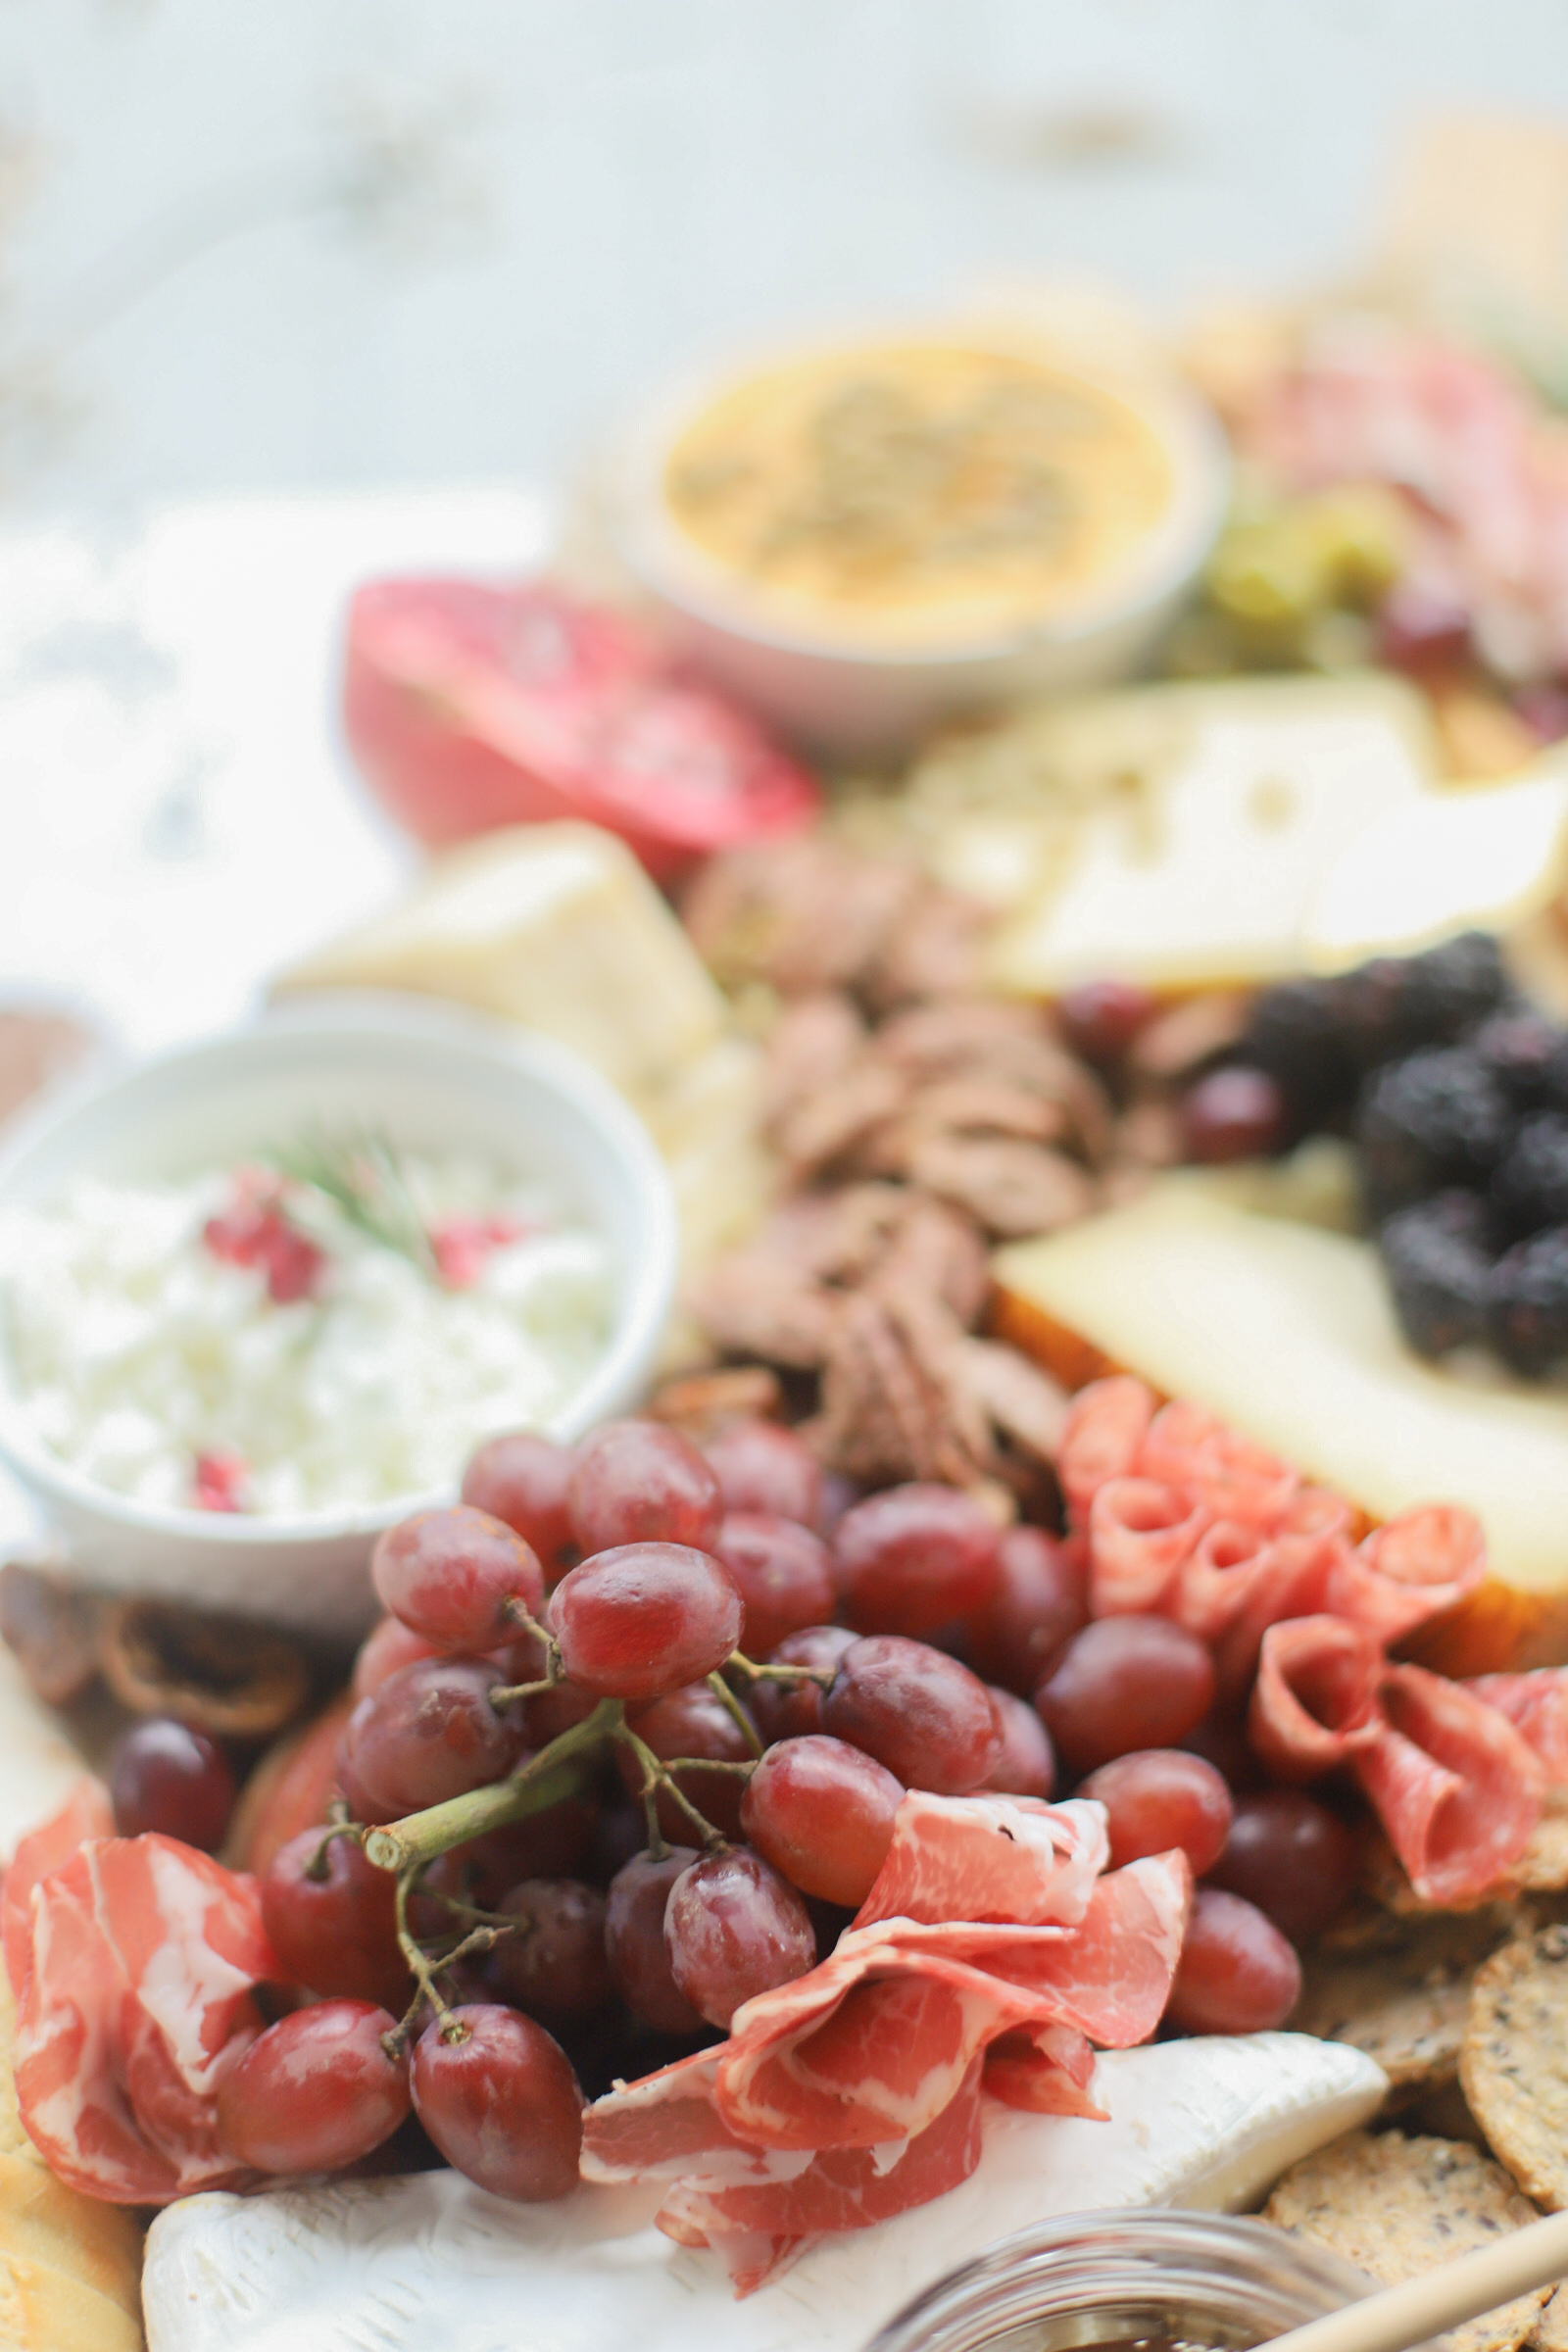 Putting together a big, beautiful charcuterie board is easier than you think. Make this impressive Thanksgiving cheese board for the fall holiday this year and seriously wow all of your guests! | glitterinc.com | @glitterinc